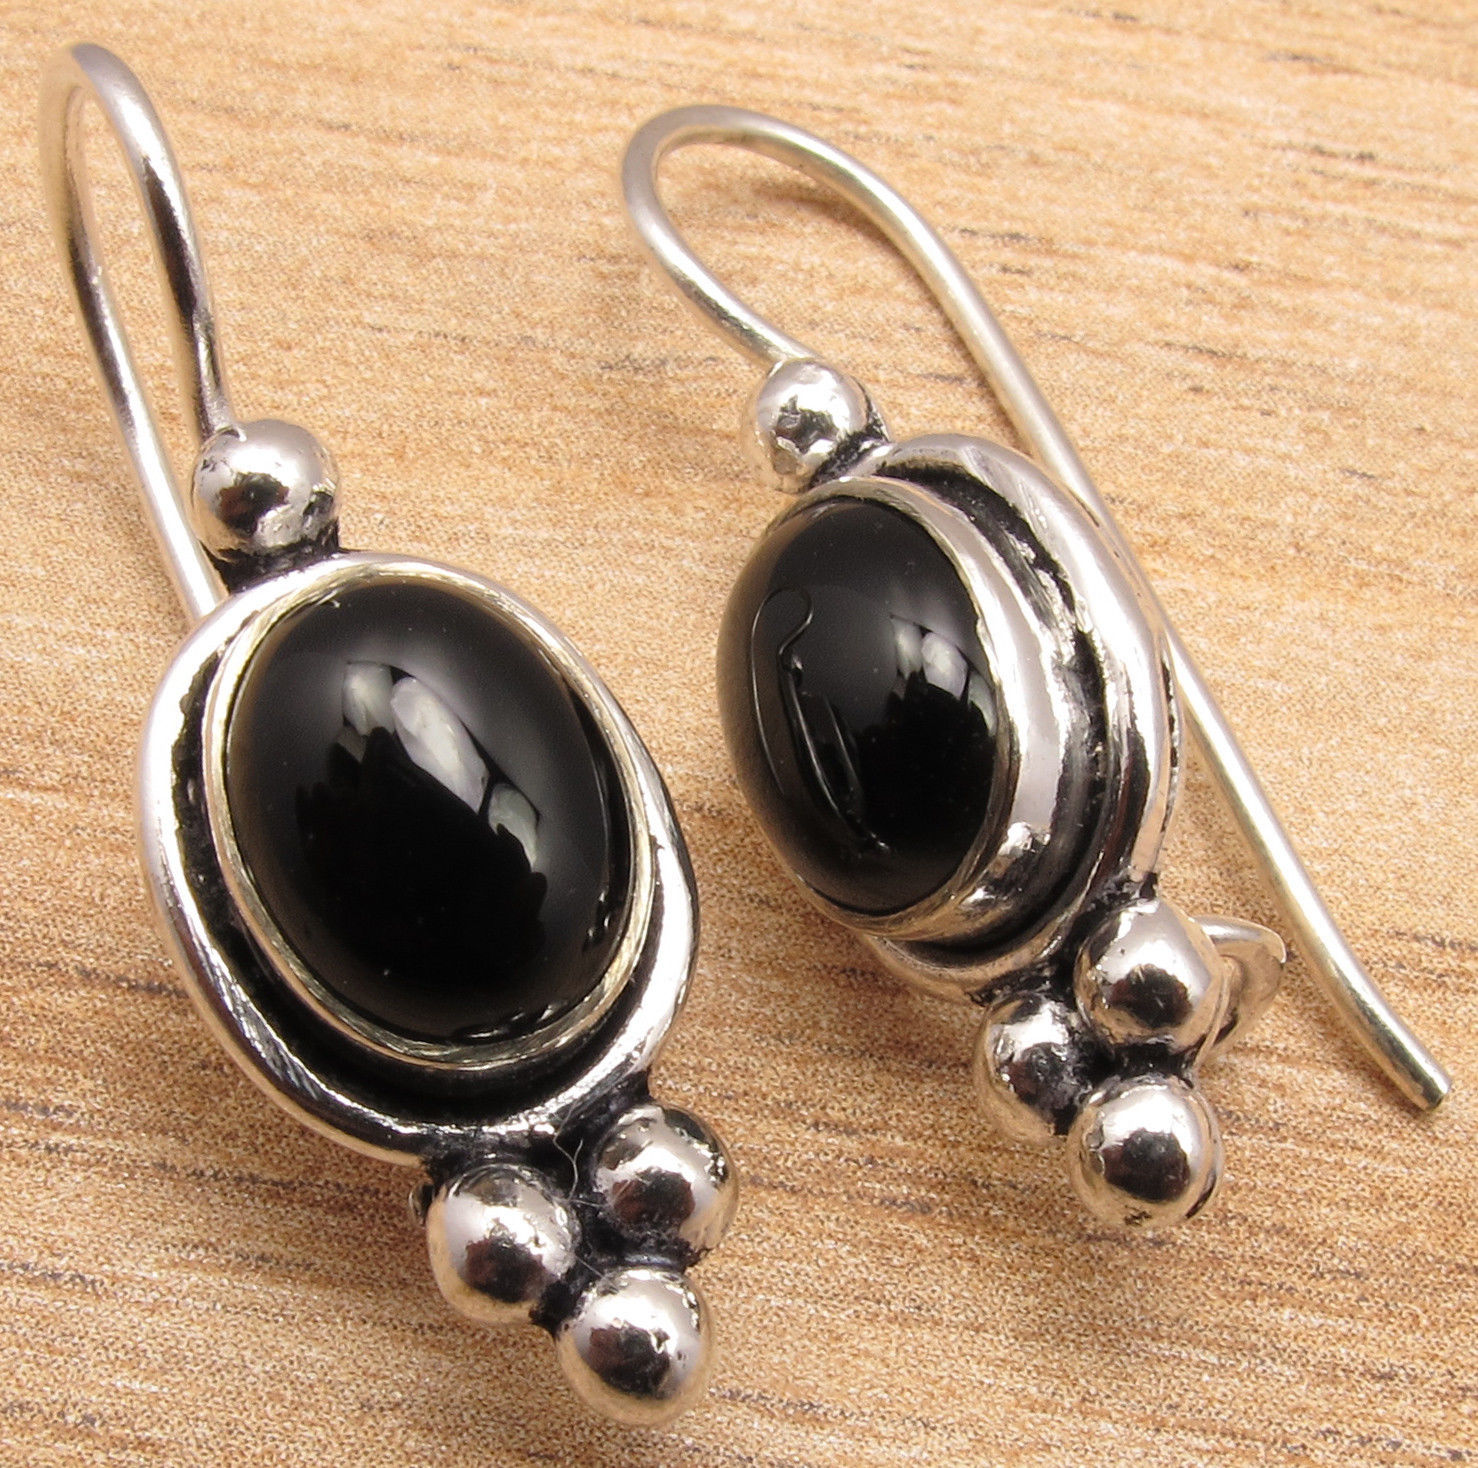 Silver Plated BLACK ONYX ONLINE SHOPPING Earrings Jewelry BESTSELLER GIFT